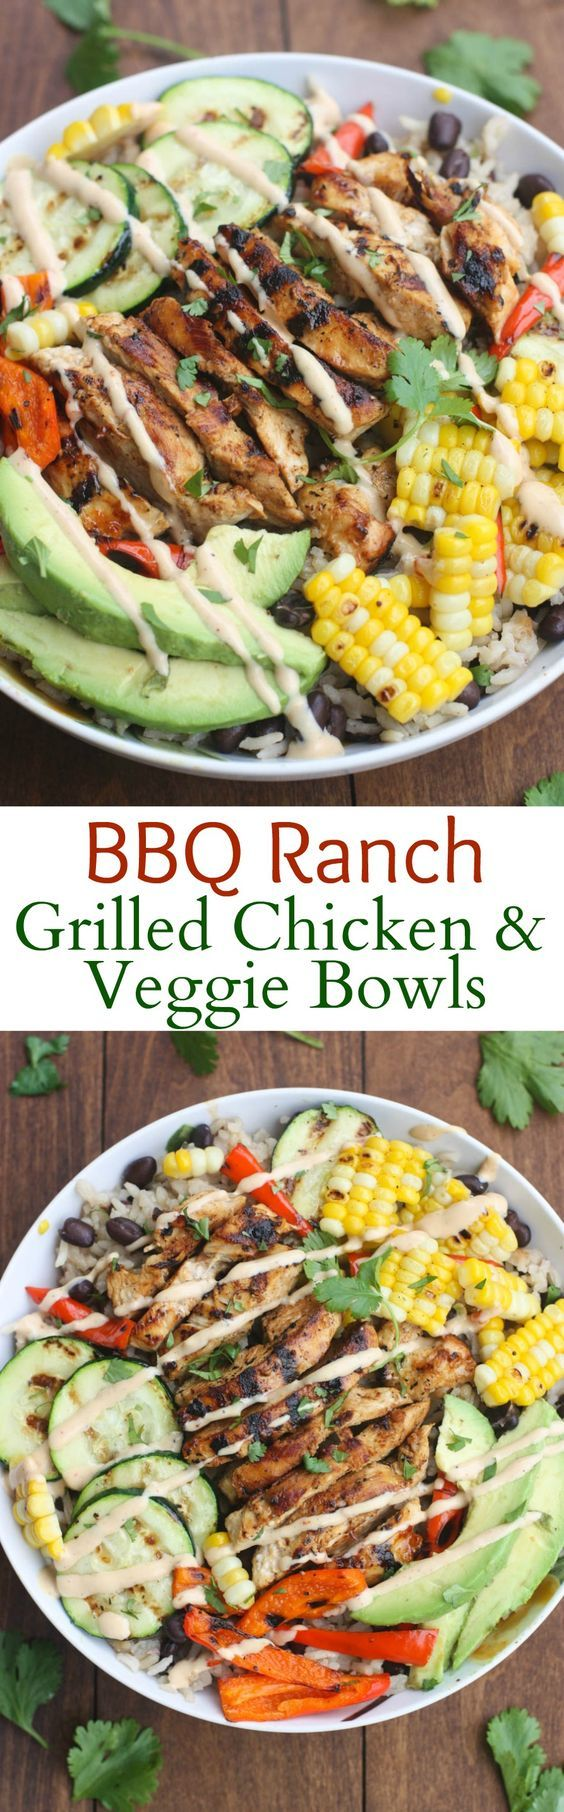 BBQ Ranch Gilled Chicken and Veggie Bowls served over black bean rice with delicious grilled veggies, marinated and grilled chicken and a delicious honey BBQ ranch sauce.   Tastes Better From Scratch @HVRanch #ad #RanchEverything